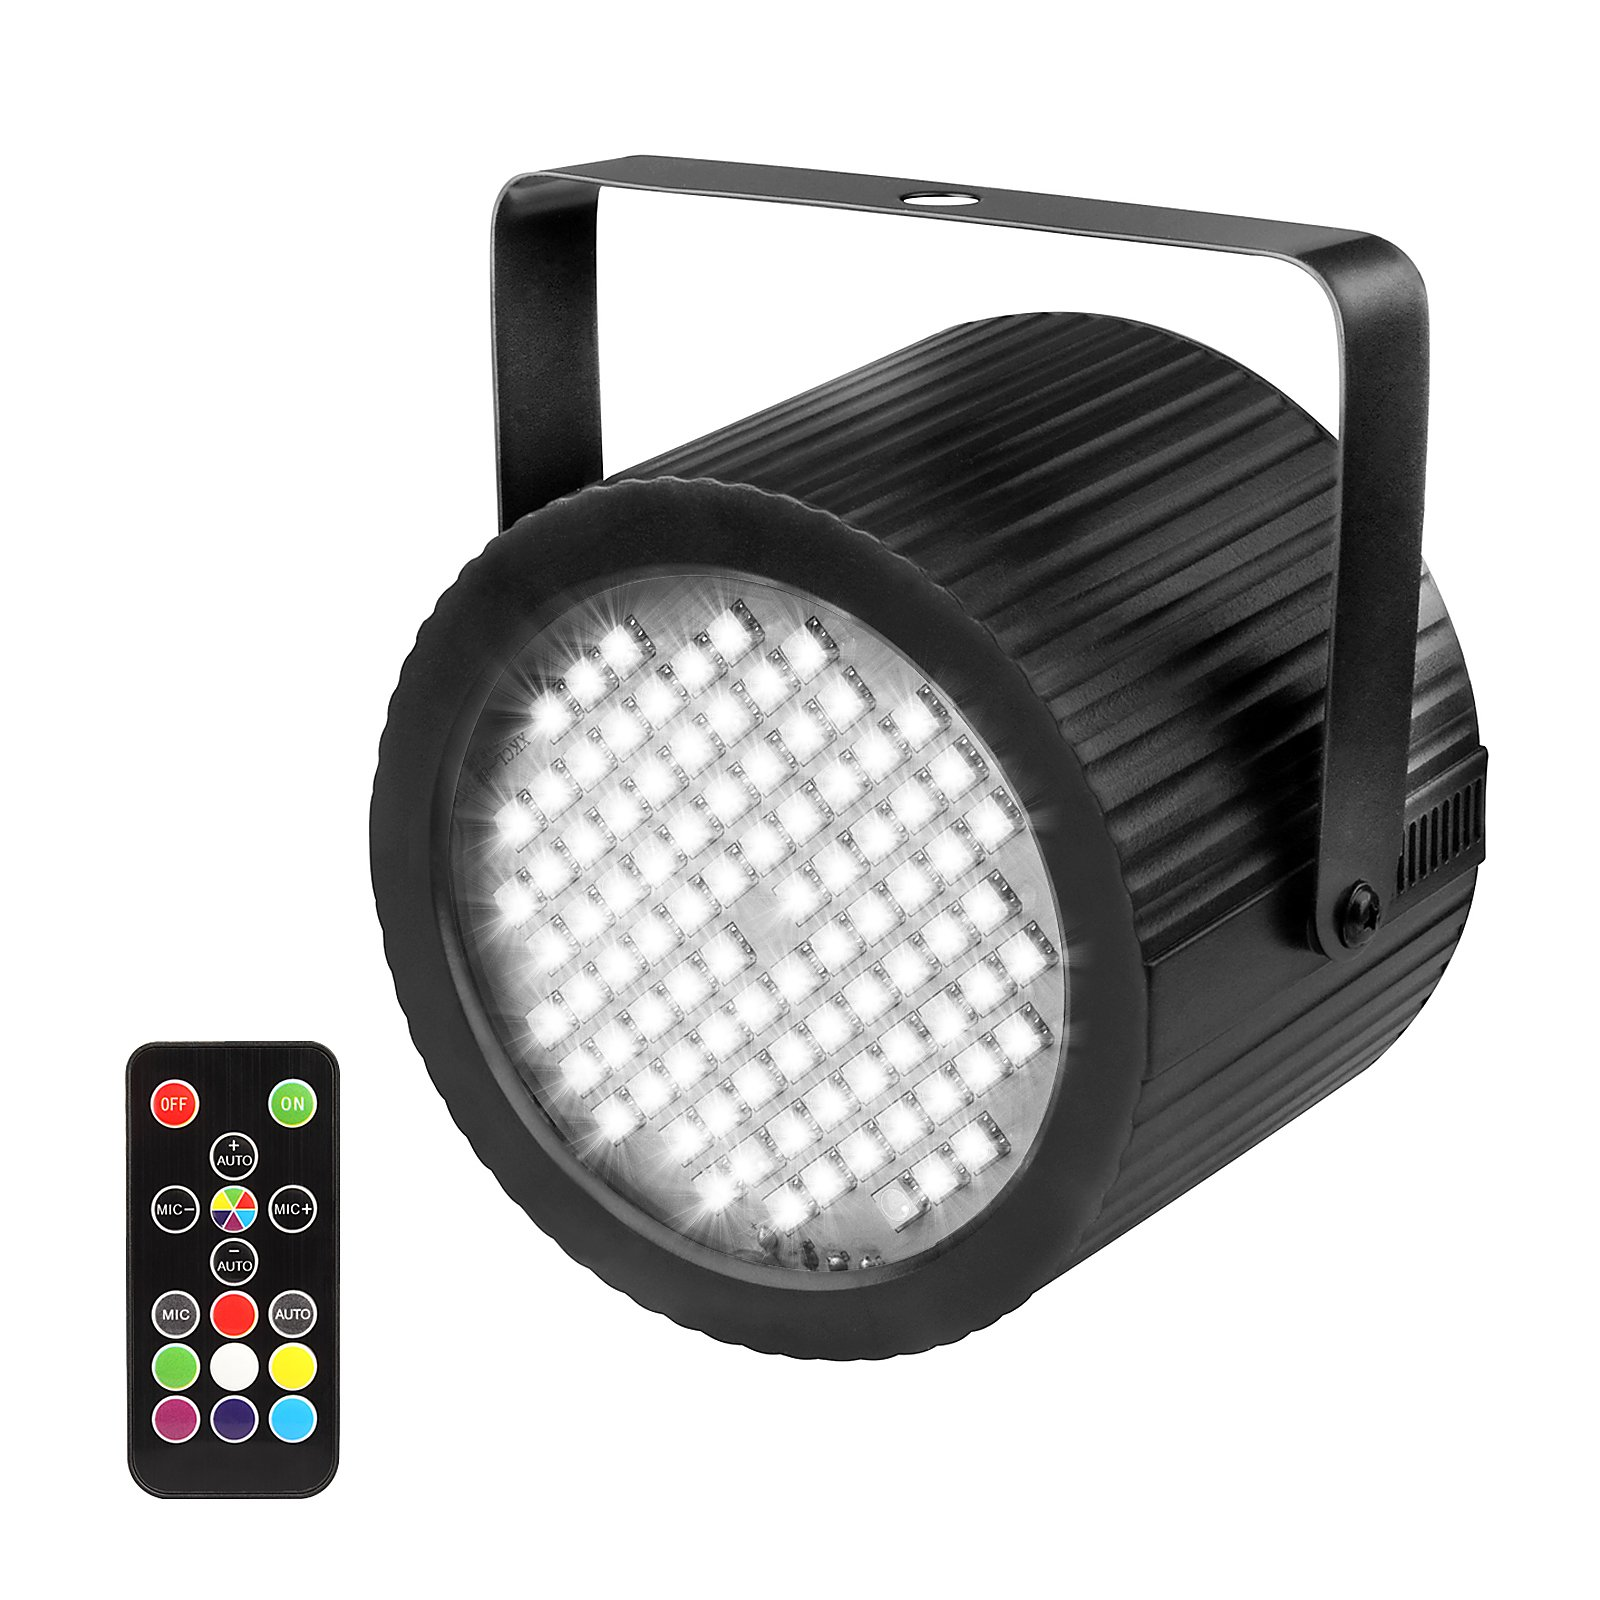 GBGS Strobe Lights 88 RGB 3 in 1 LED with White Strobe Effect Sound-Active Adjustable Flash Rate Strobe Stage Party Flash Lighting with Remote Control for Birthday Party Stage Dance Floor by GBGS